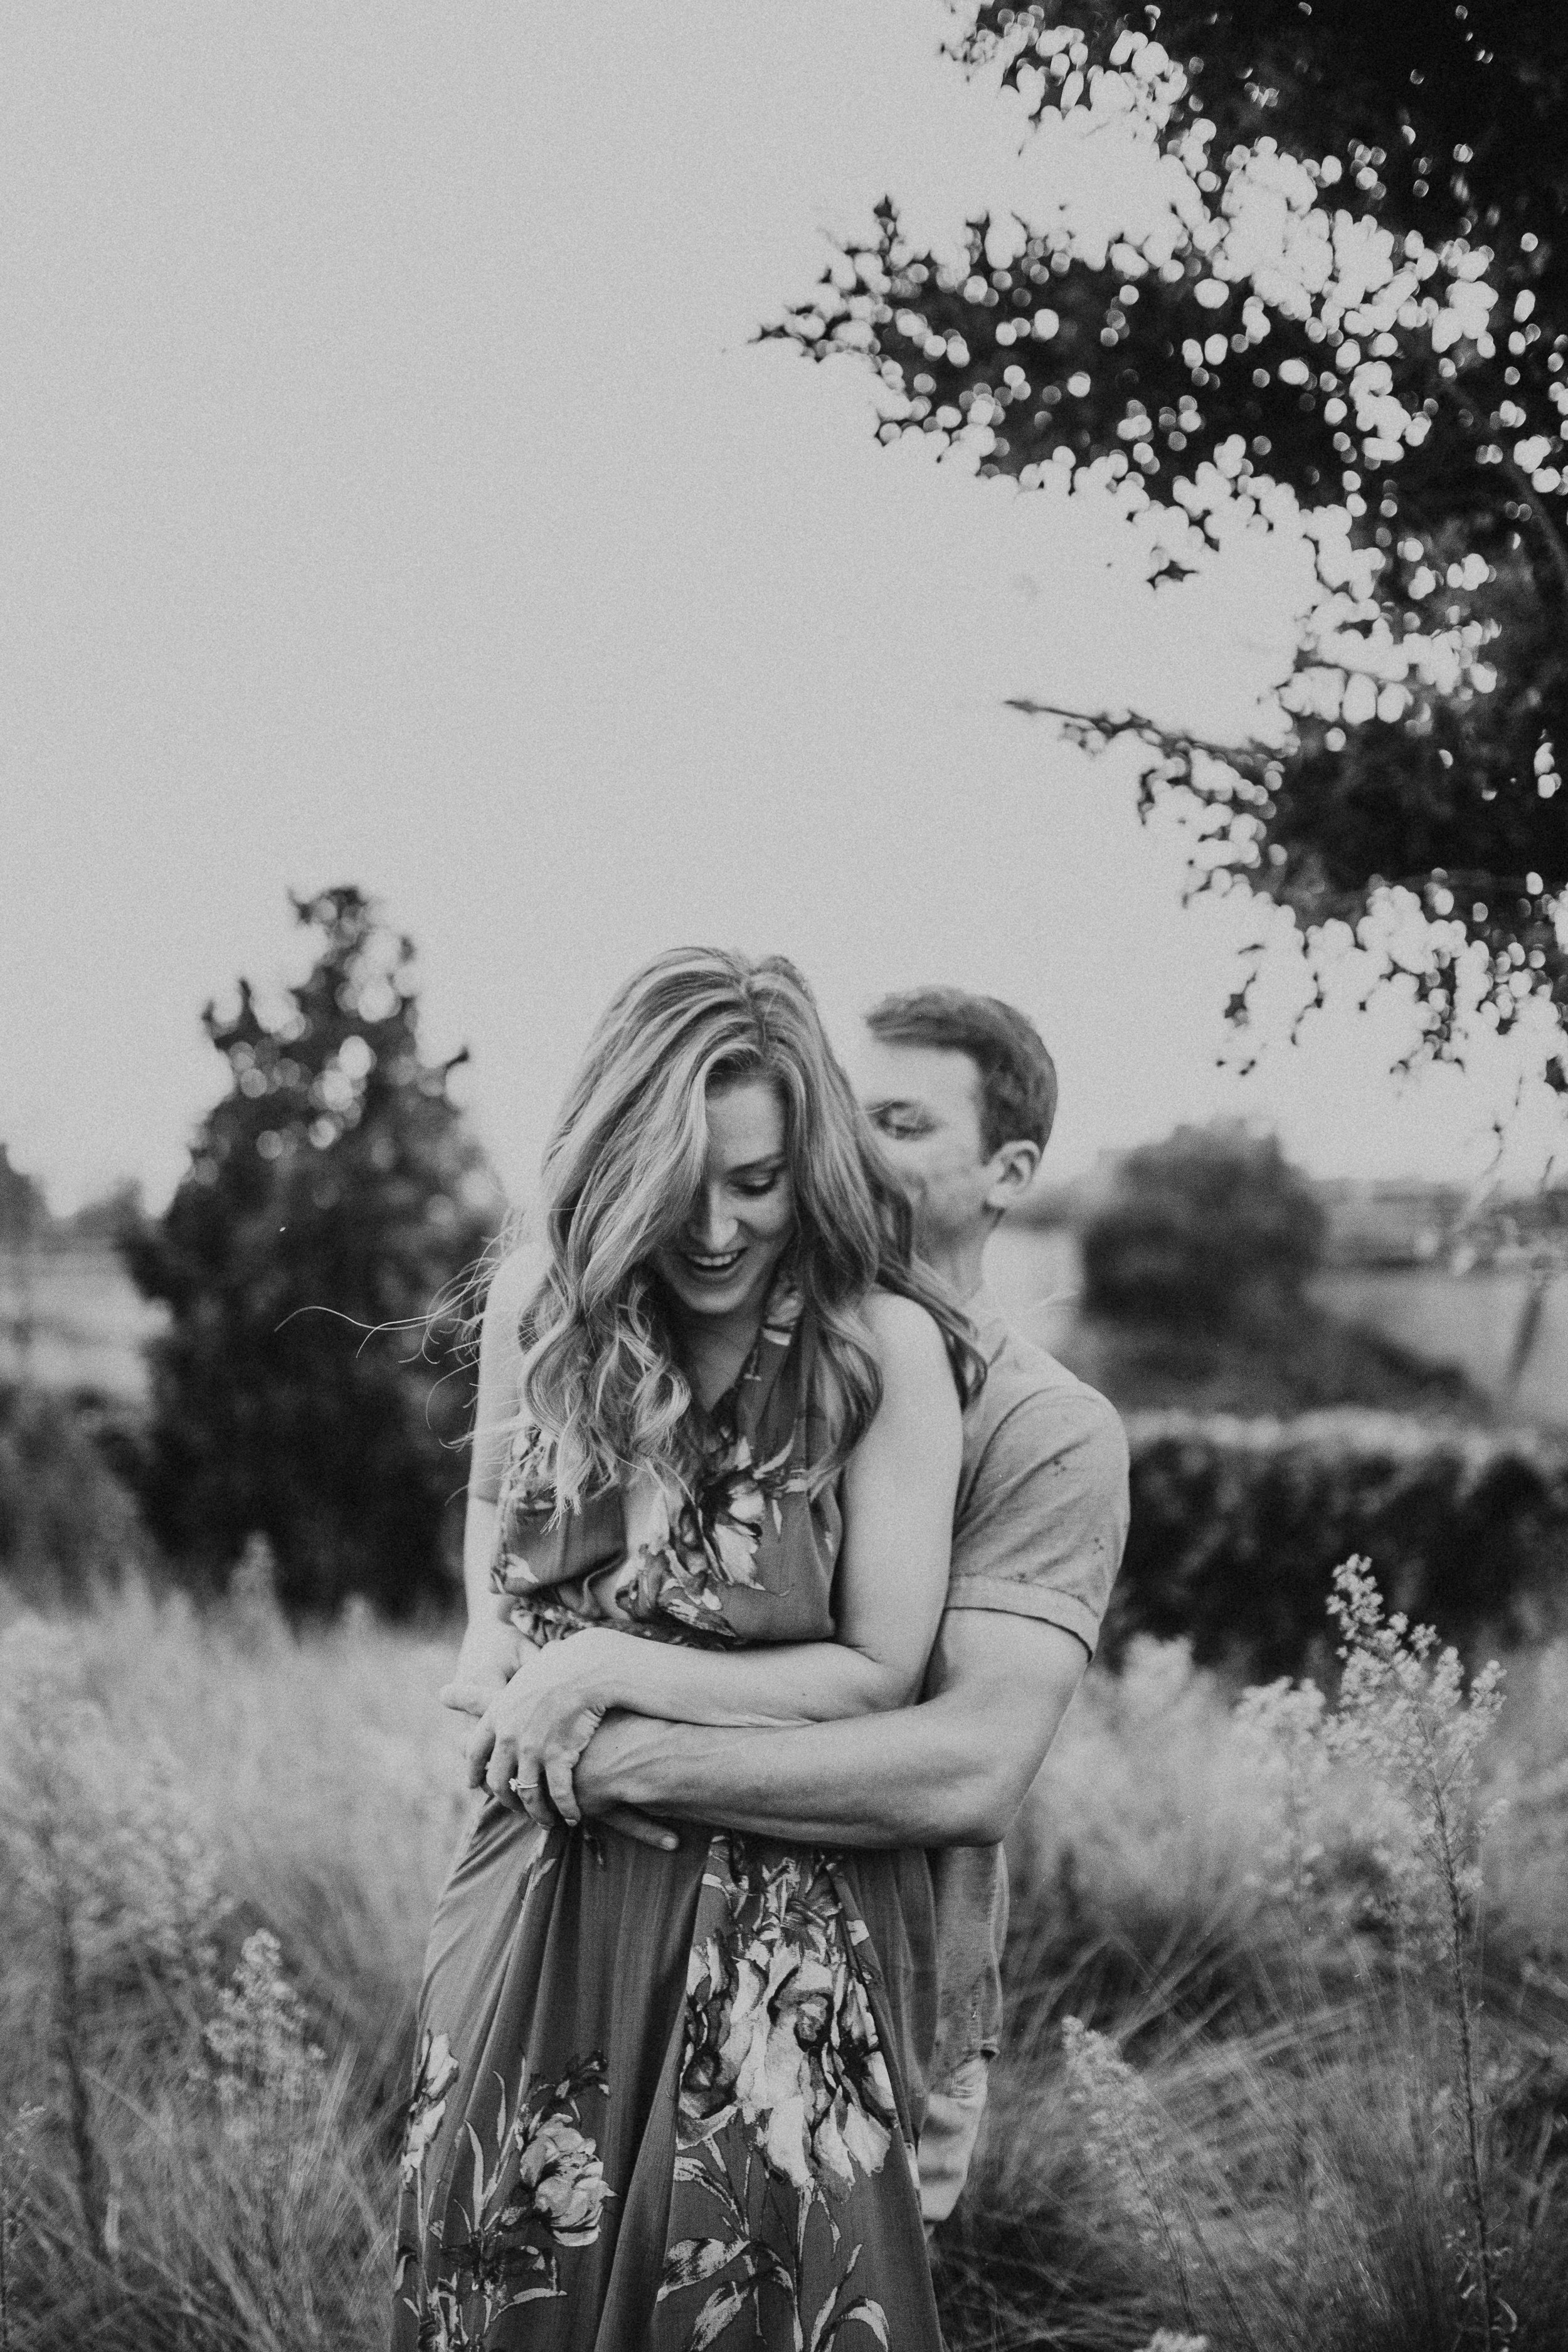 katie and brandon _ engagement session _ 08-5-1700215.jpg